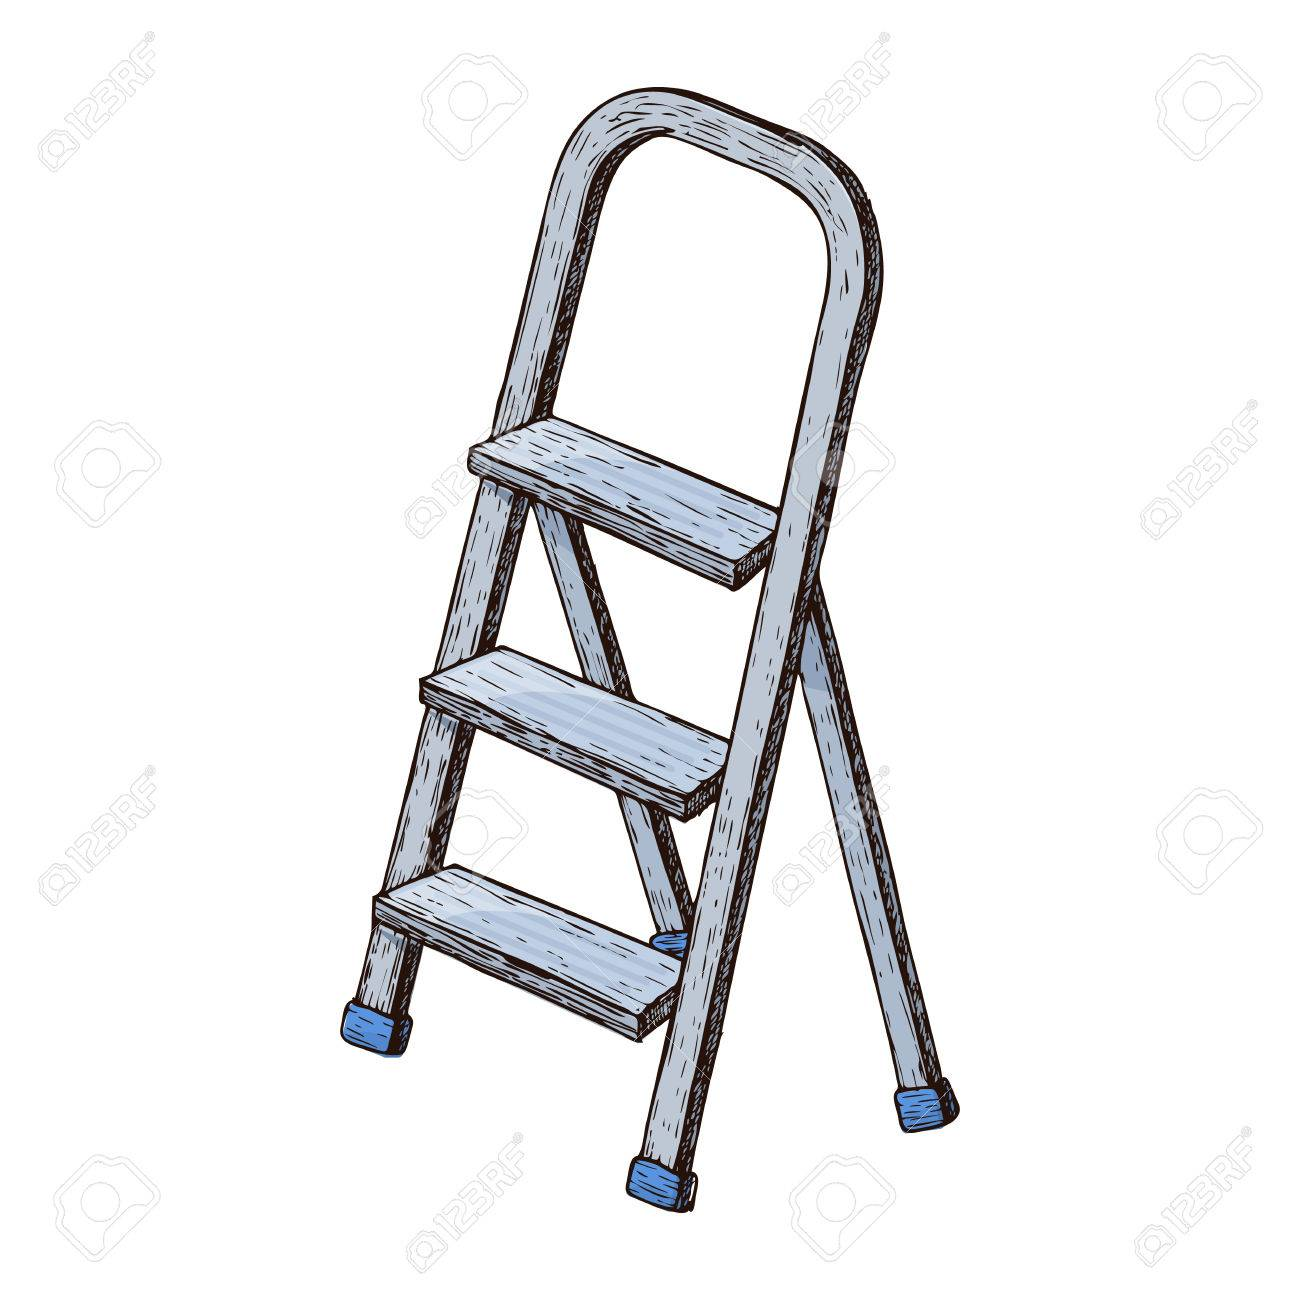 Stepladder on white background, colorful sketch illustration of repair tool. Vector - 87909757